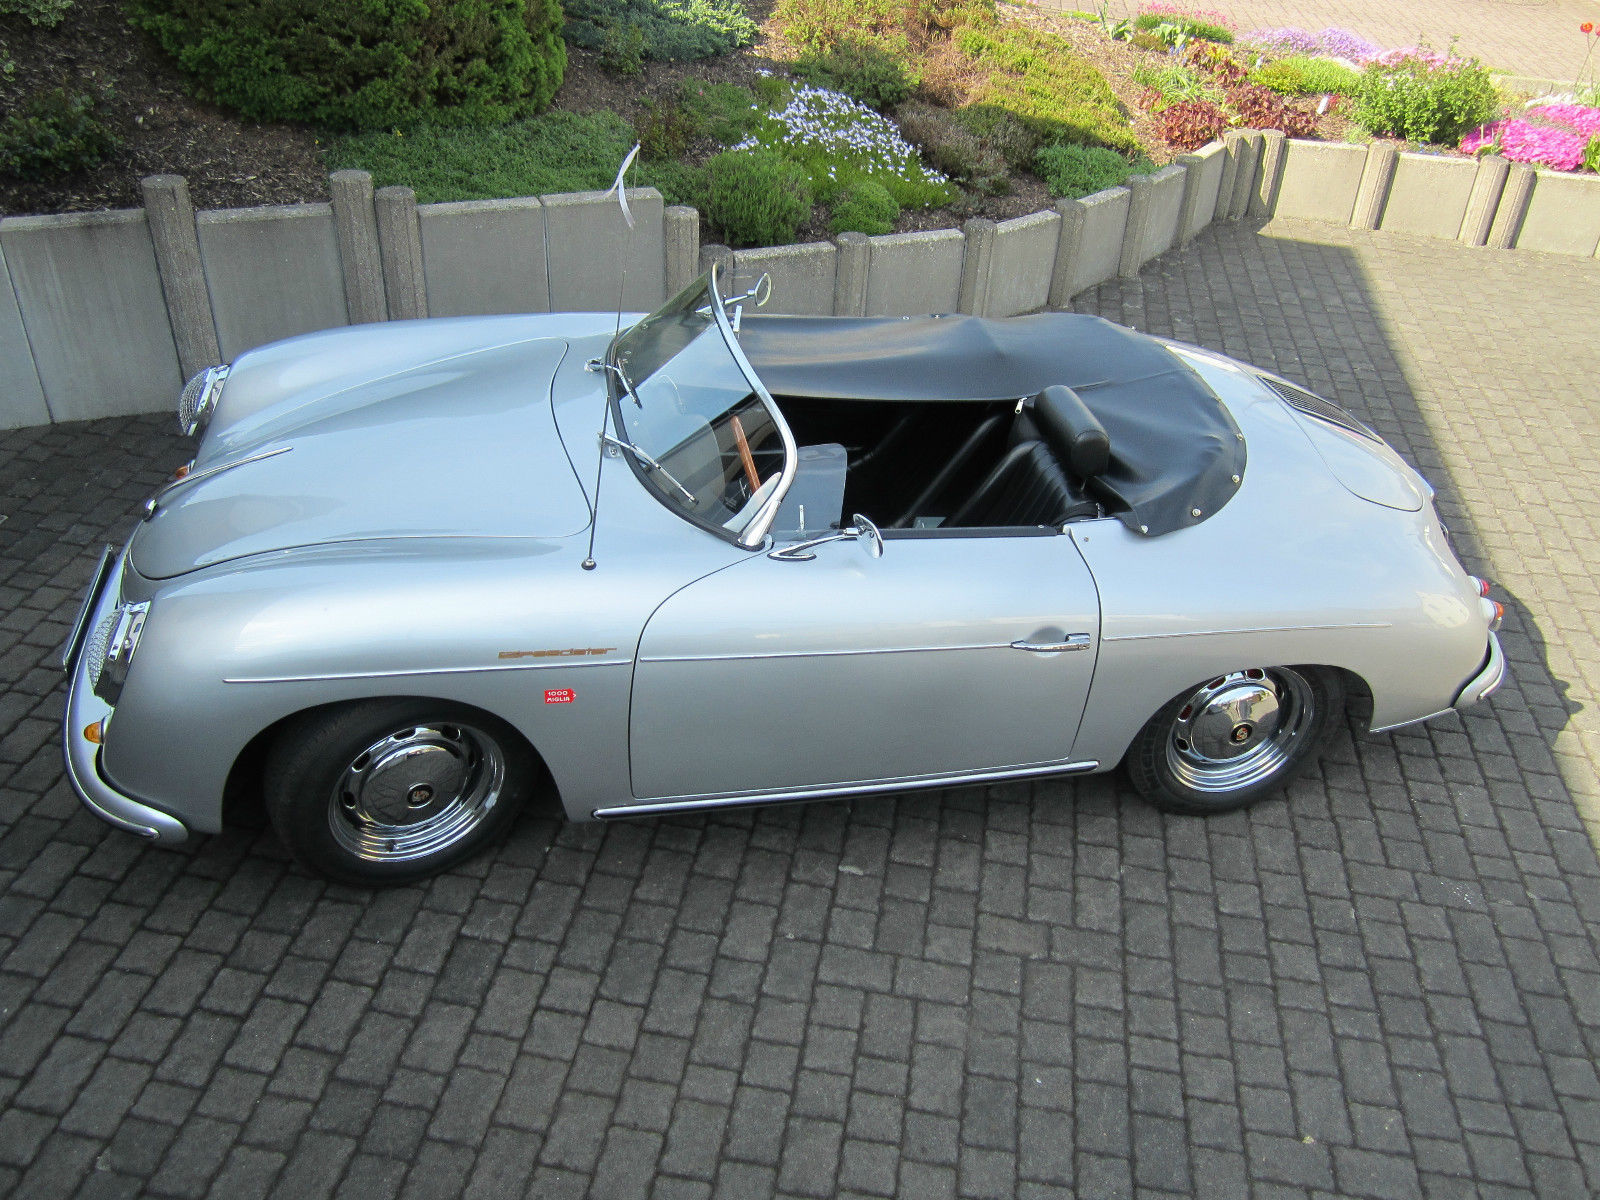 Porsche 356 Speedster Apal Replica Oldtimer For Sale